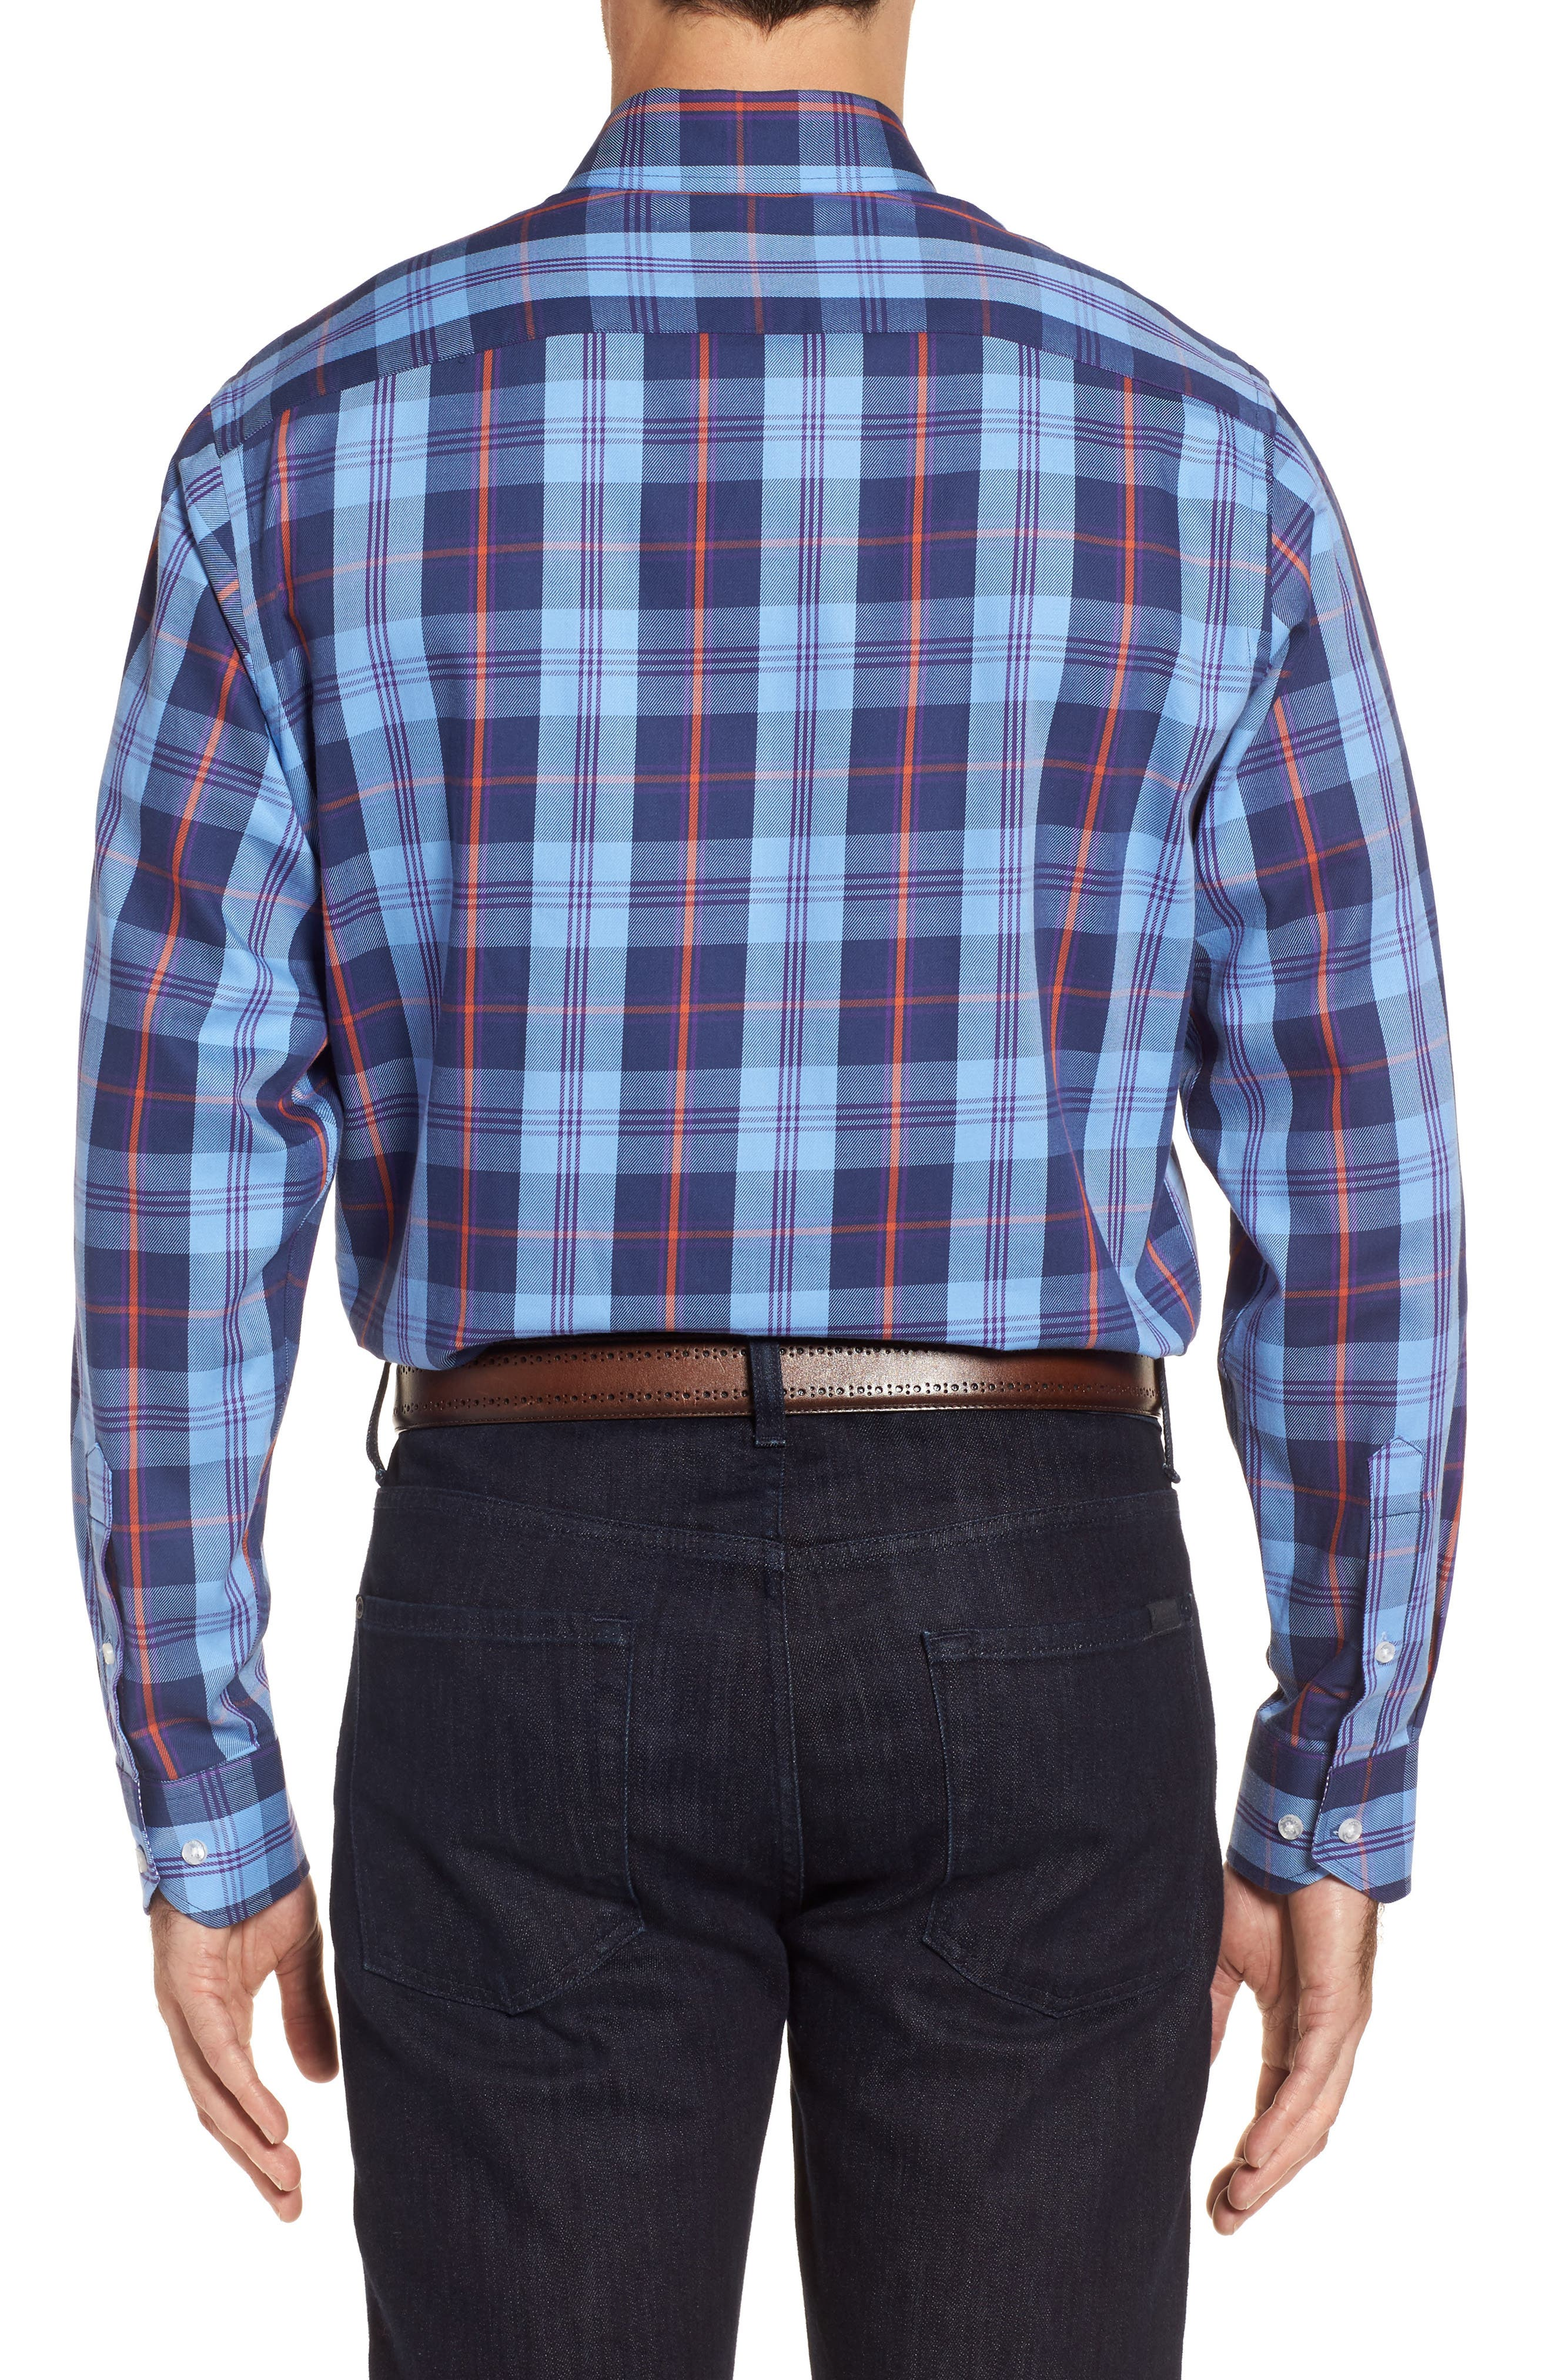 Delcambre Plaid Twill Sport Shirt,                             Alternate thumbnail 2, color,